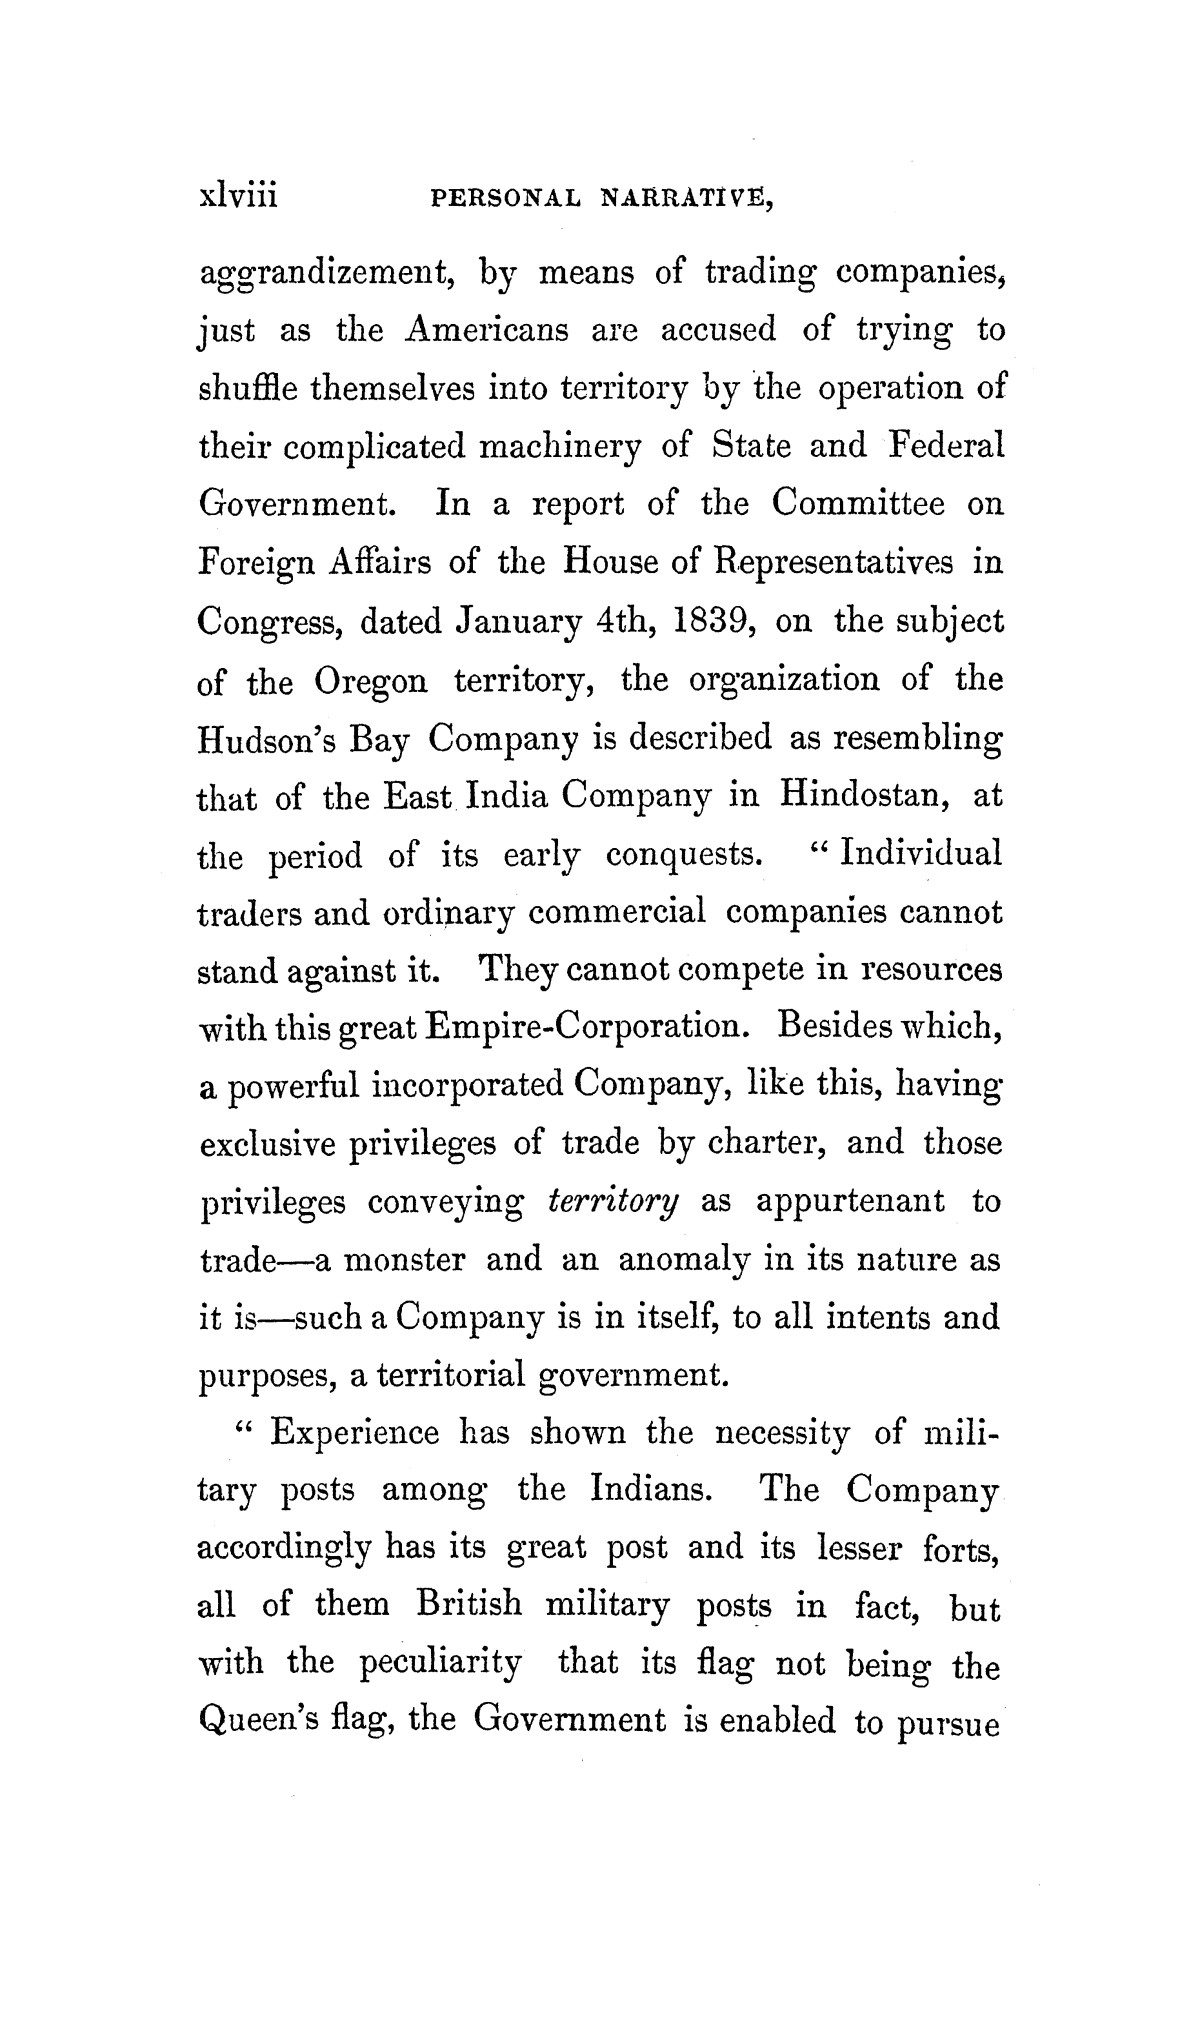 Texas: the rise, progress, and prospects of the Republic of Texas, Vol.1                                                                                                      [Sequence #]: 48 of 432